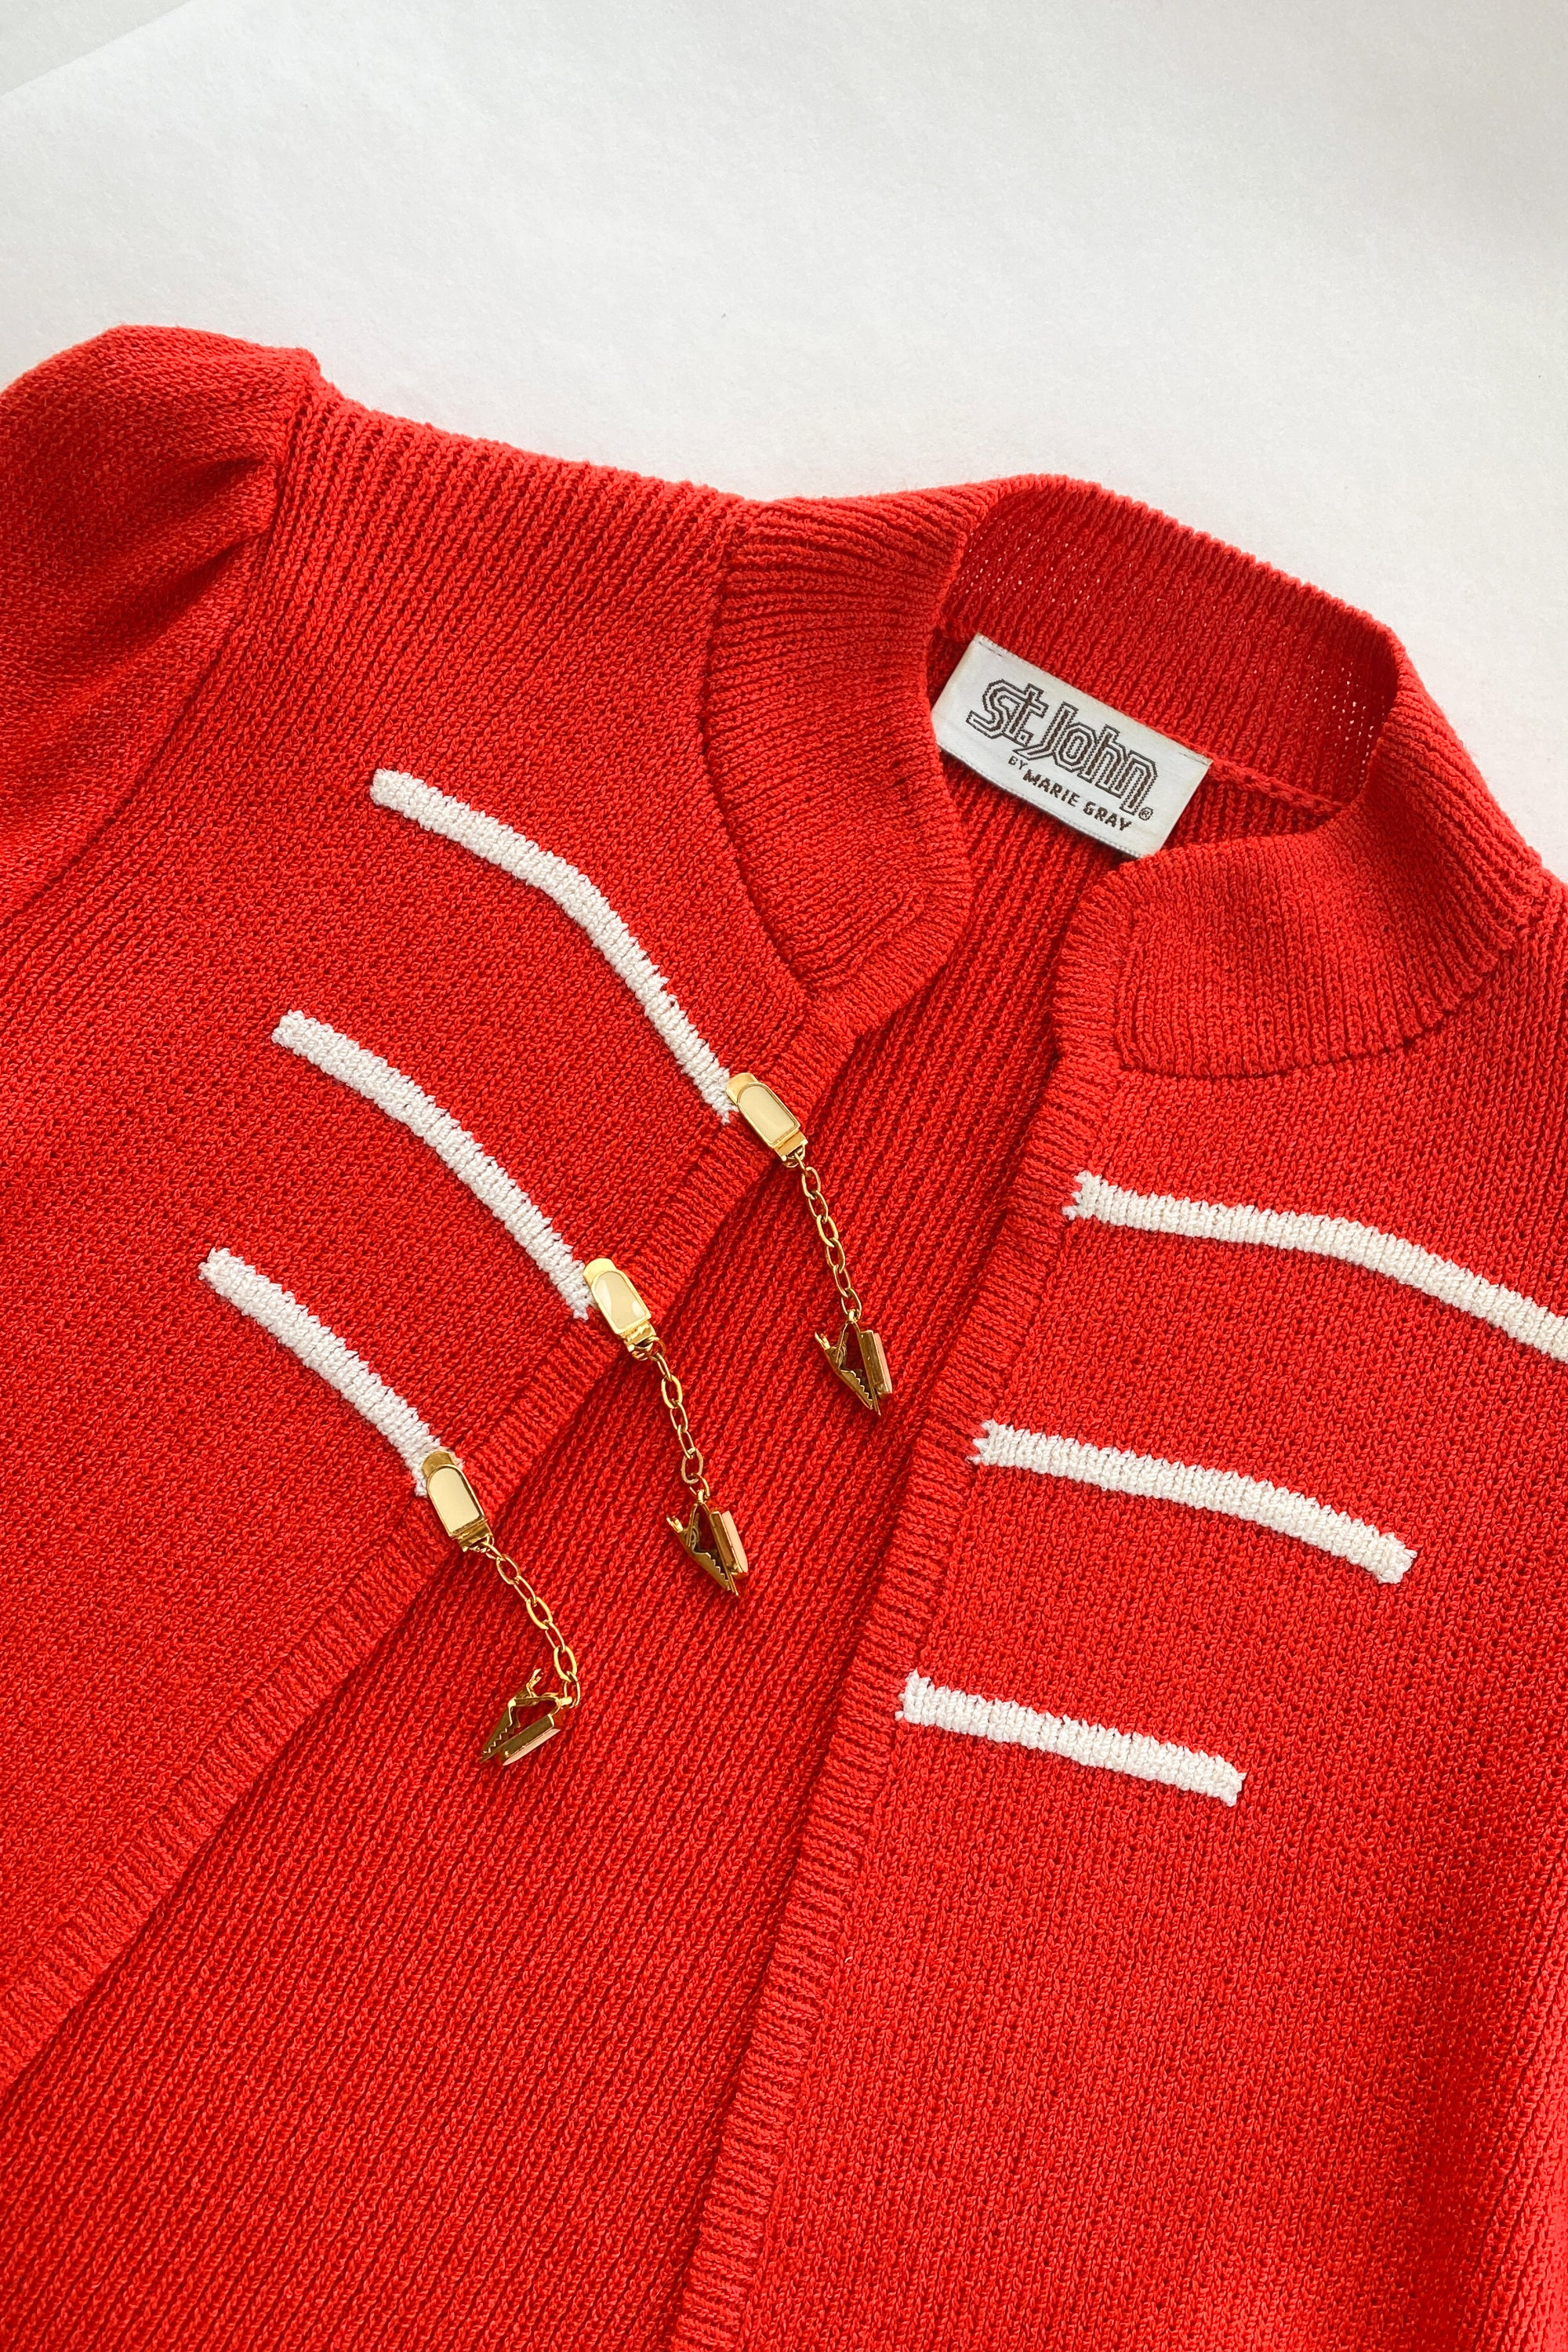 1970s St. John Knit Sergeant Sweater